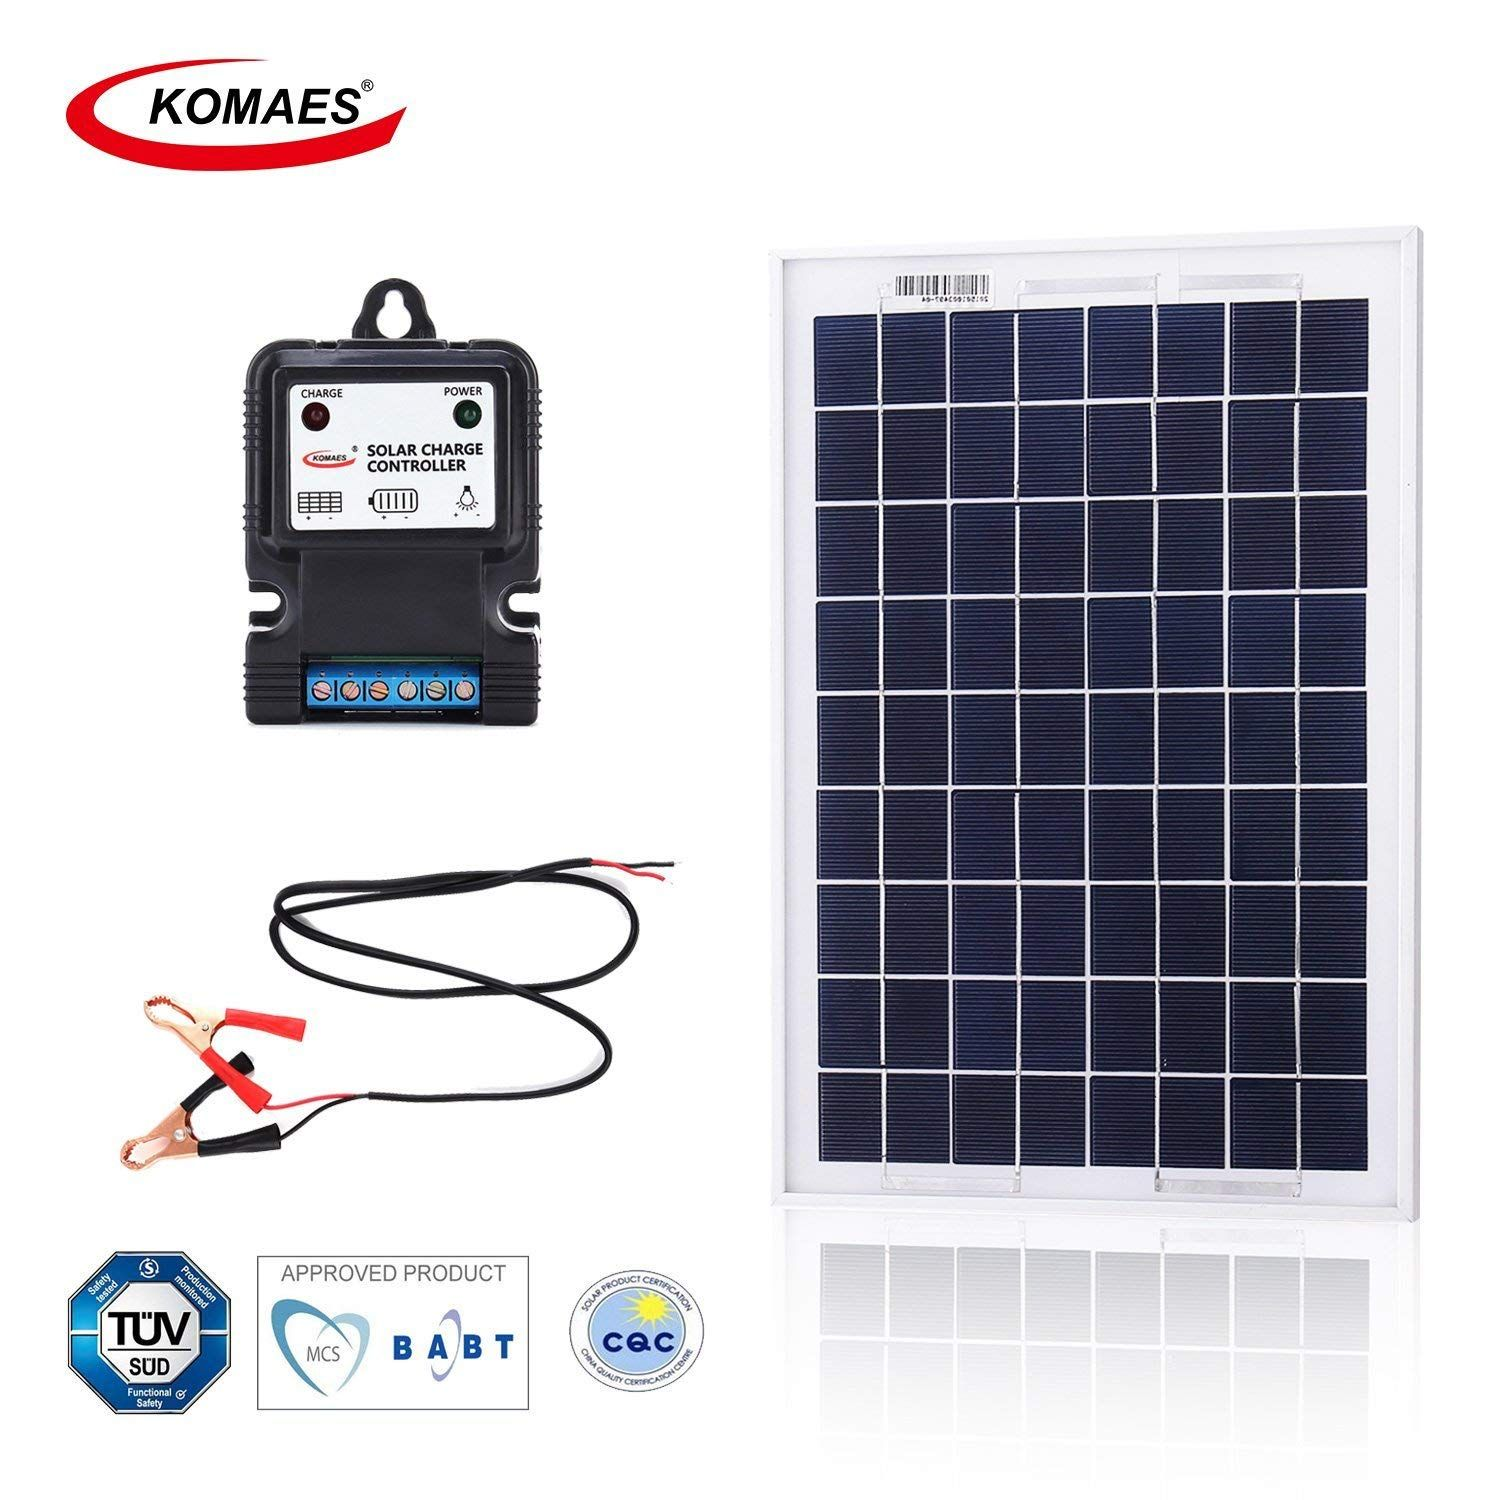 Komaes 10 Watt 12volt Polycrystalline Photovoltaic Pv Solar Panel Kit 12v Solar Power Starter Kit With Mc4 Connector Solar Energy Panels Solar Technology Solar Panels